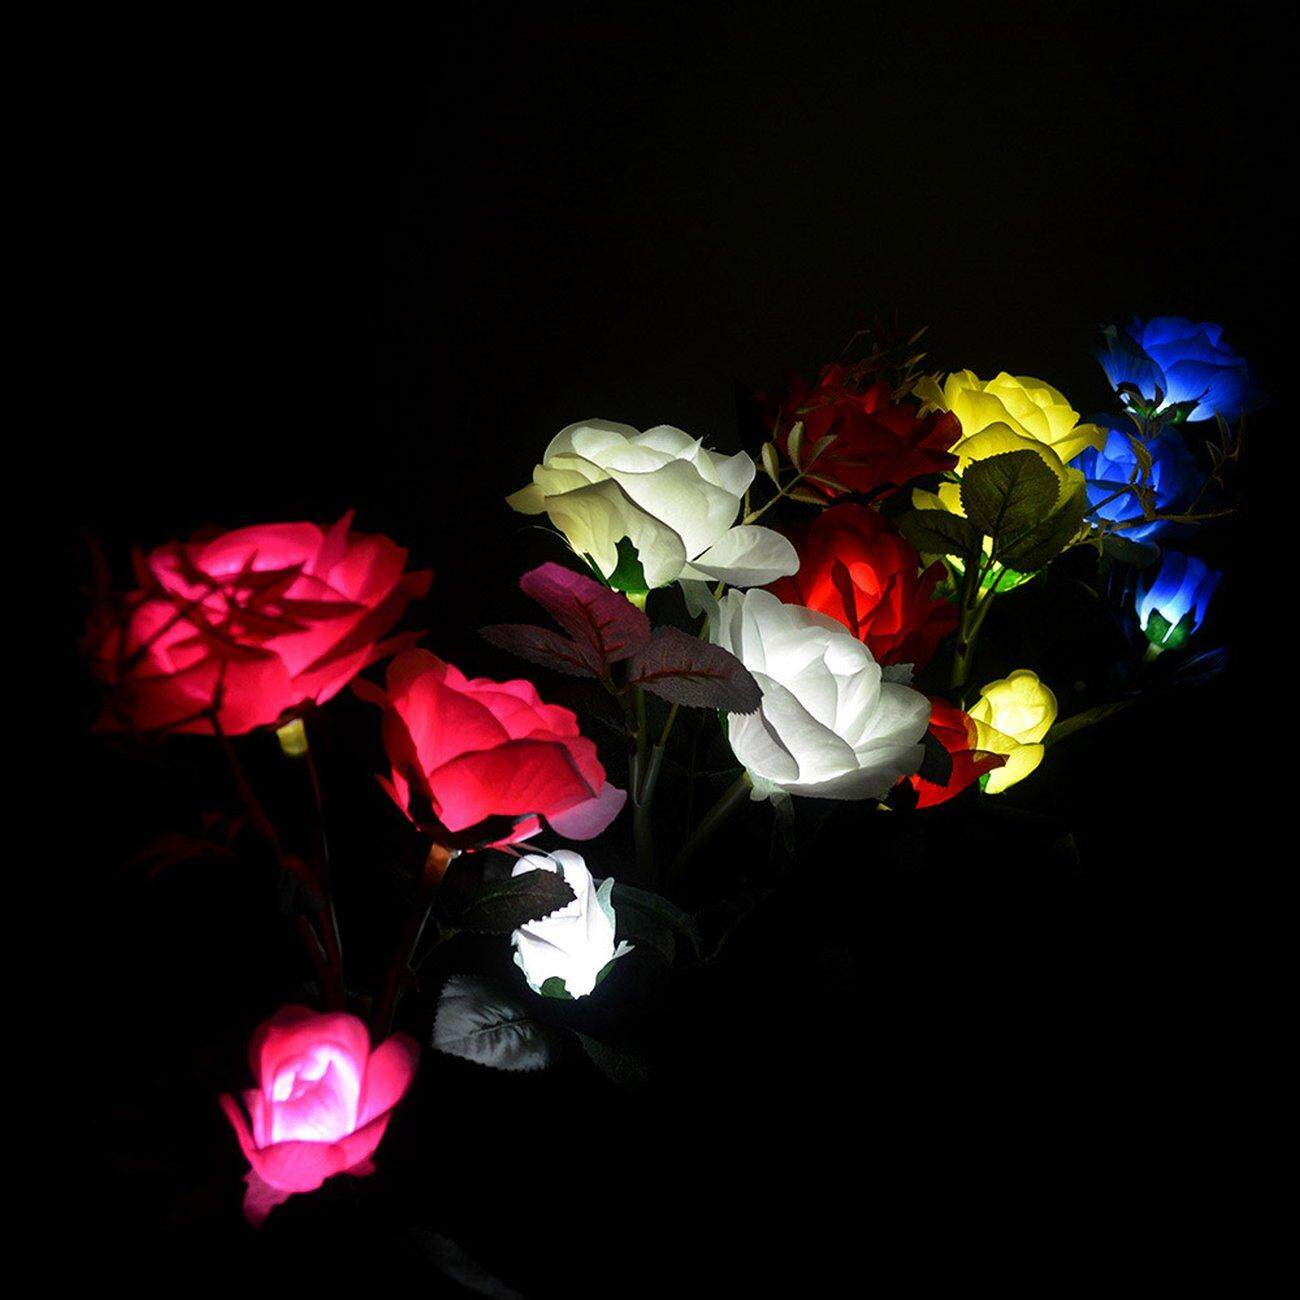 Hot Deals 3 Solar Rose Lights Outdoor Garden Led Ground Insert Artificial Lantern